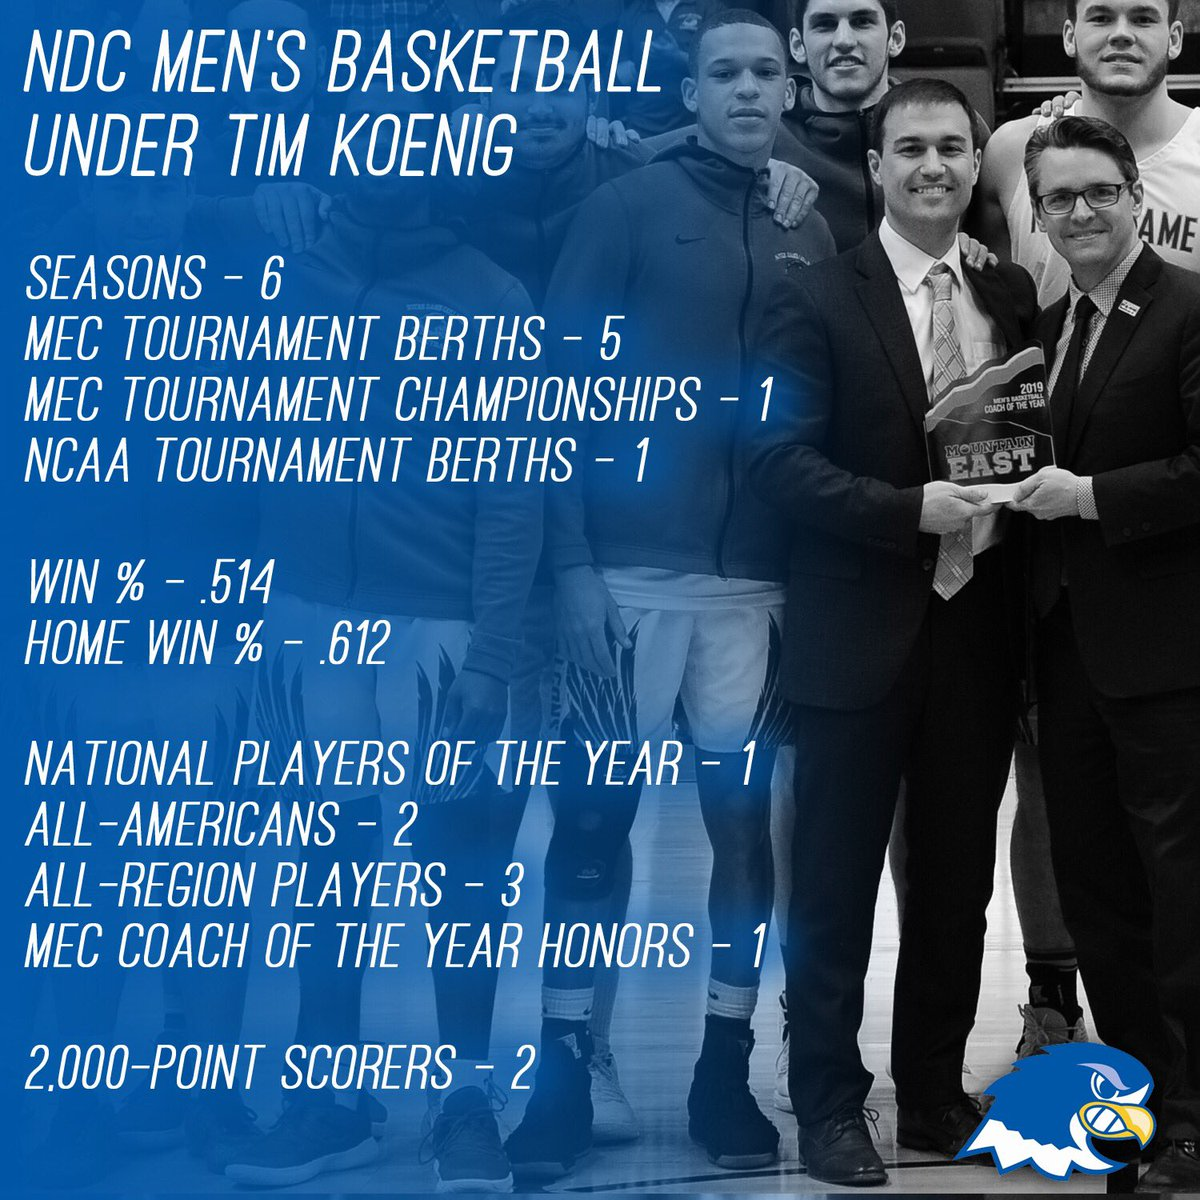 From upsetting the number one team in the nation in year one, to winning the 2019 MEC Championship, Coach Koenig has taken NDC men's basketball to new heights! #TakeFlight <br>http://pic.twitter.com/qq4zSErib7